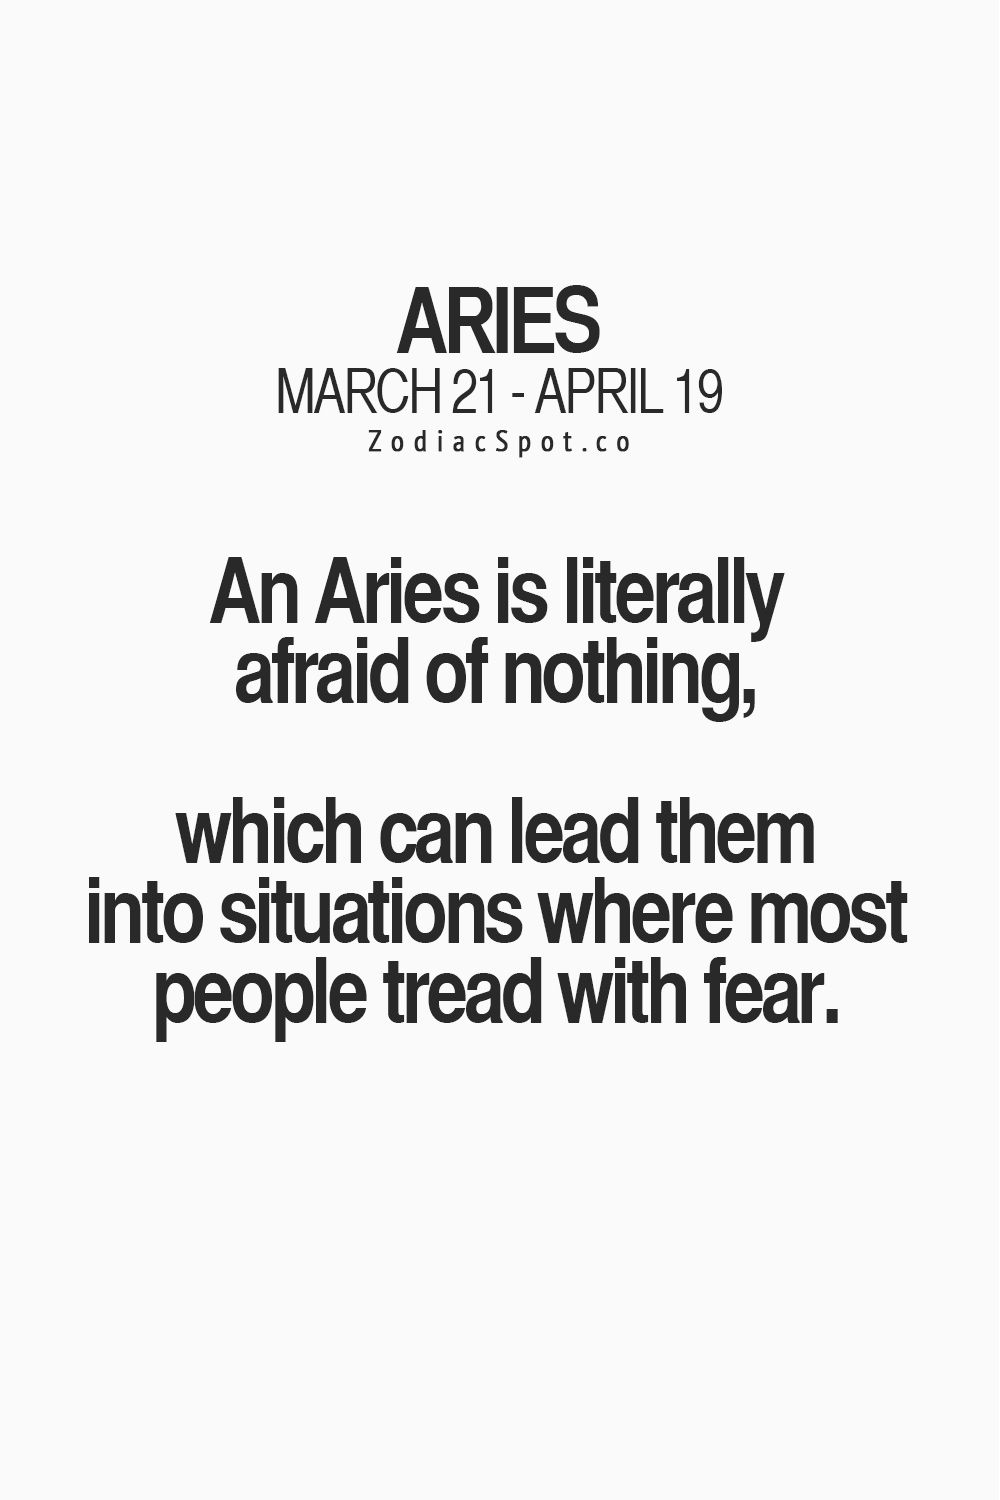 I like this. Wouldnt say I am afriad of nothing, but